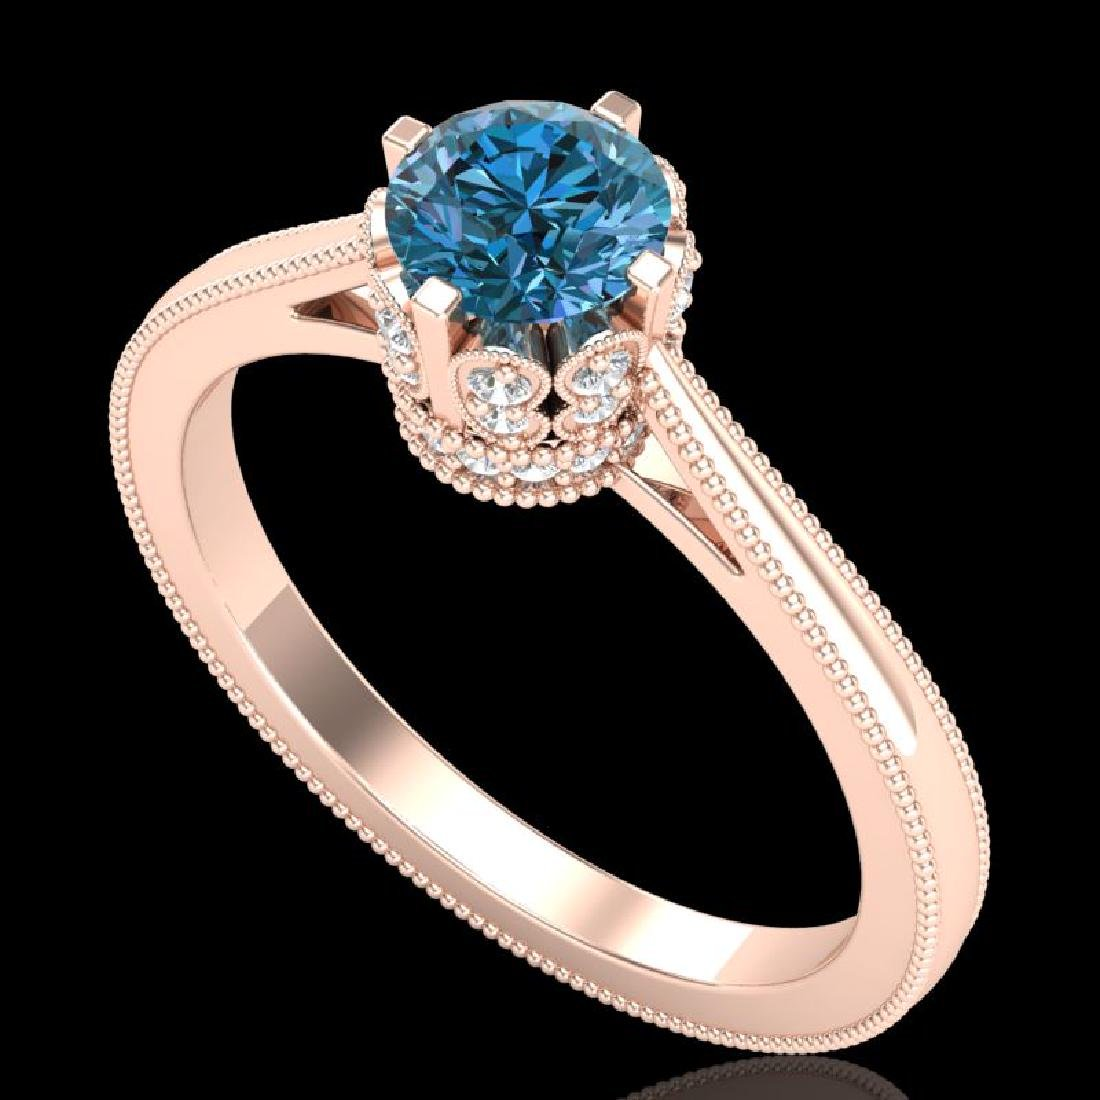 0.81 CTW Fancy Intense Blue Diamond Solitaire Art Deco